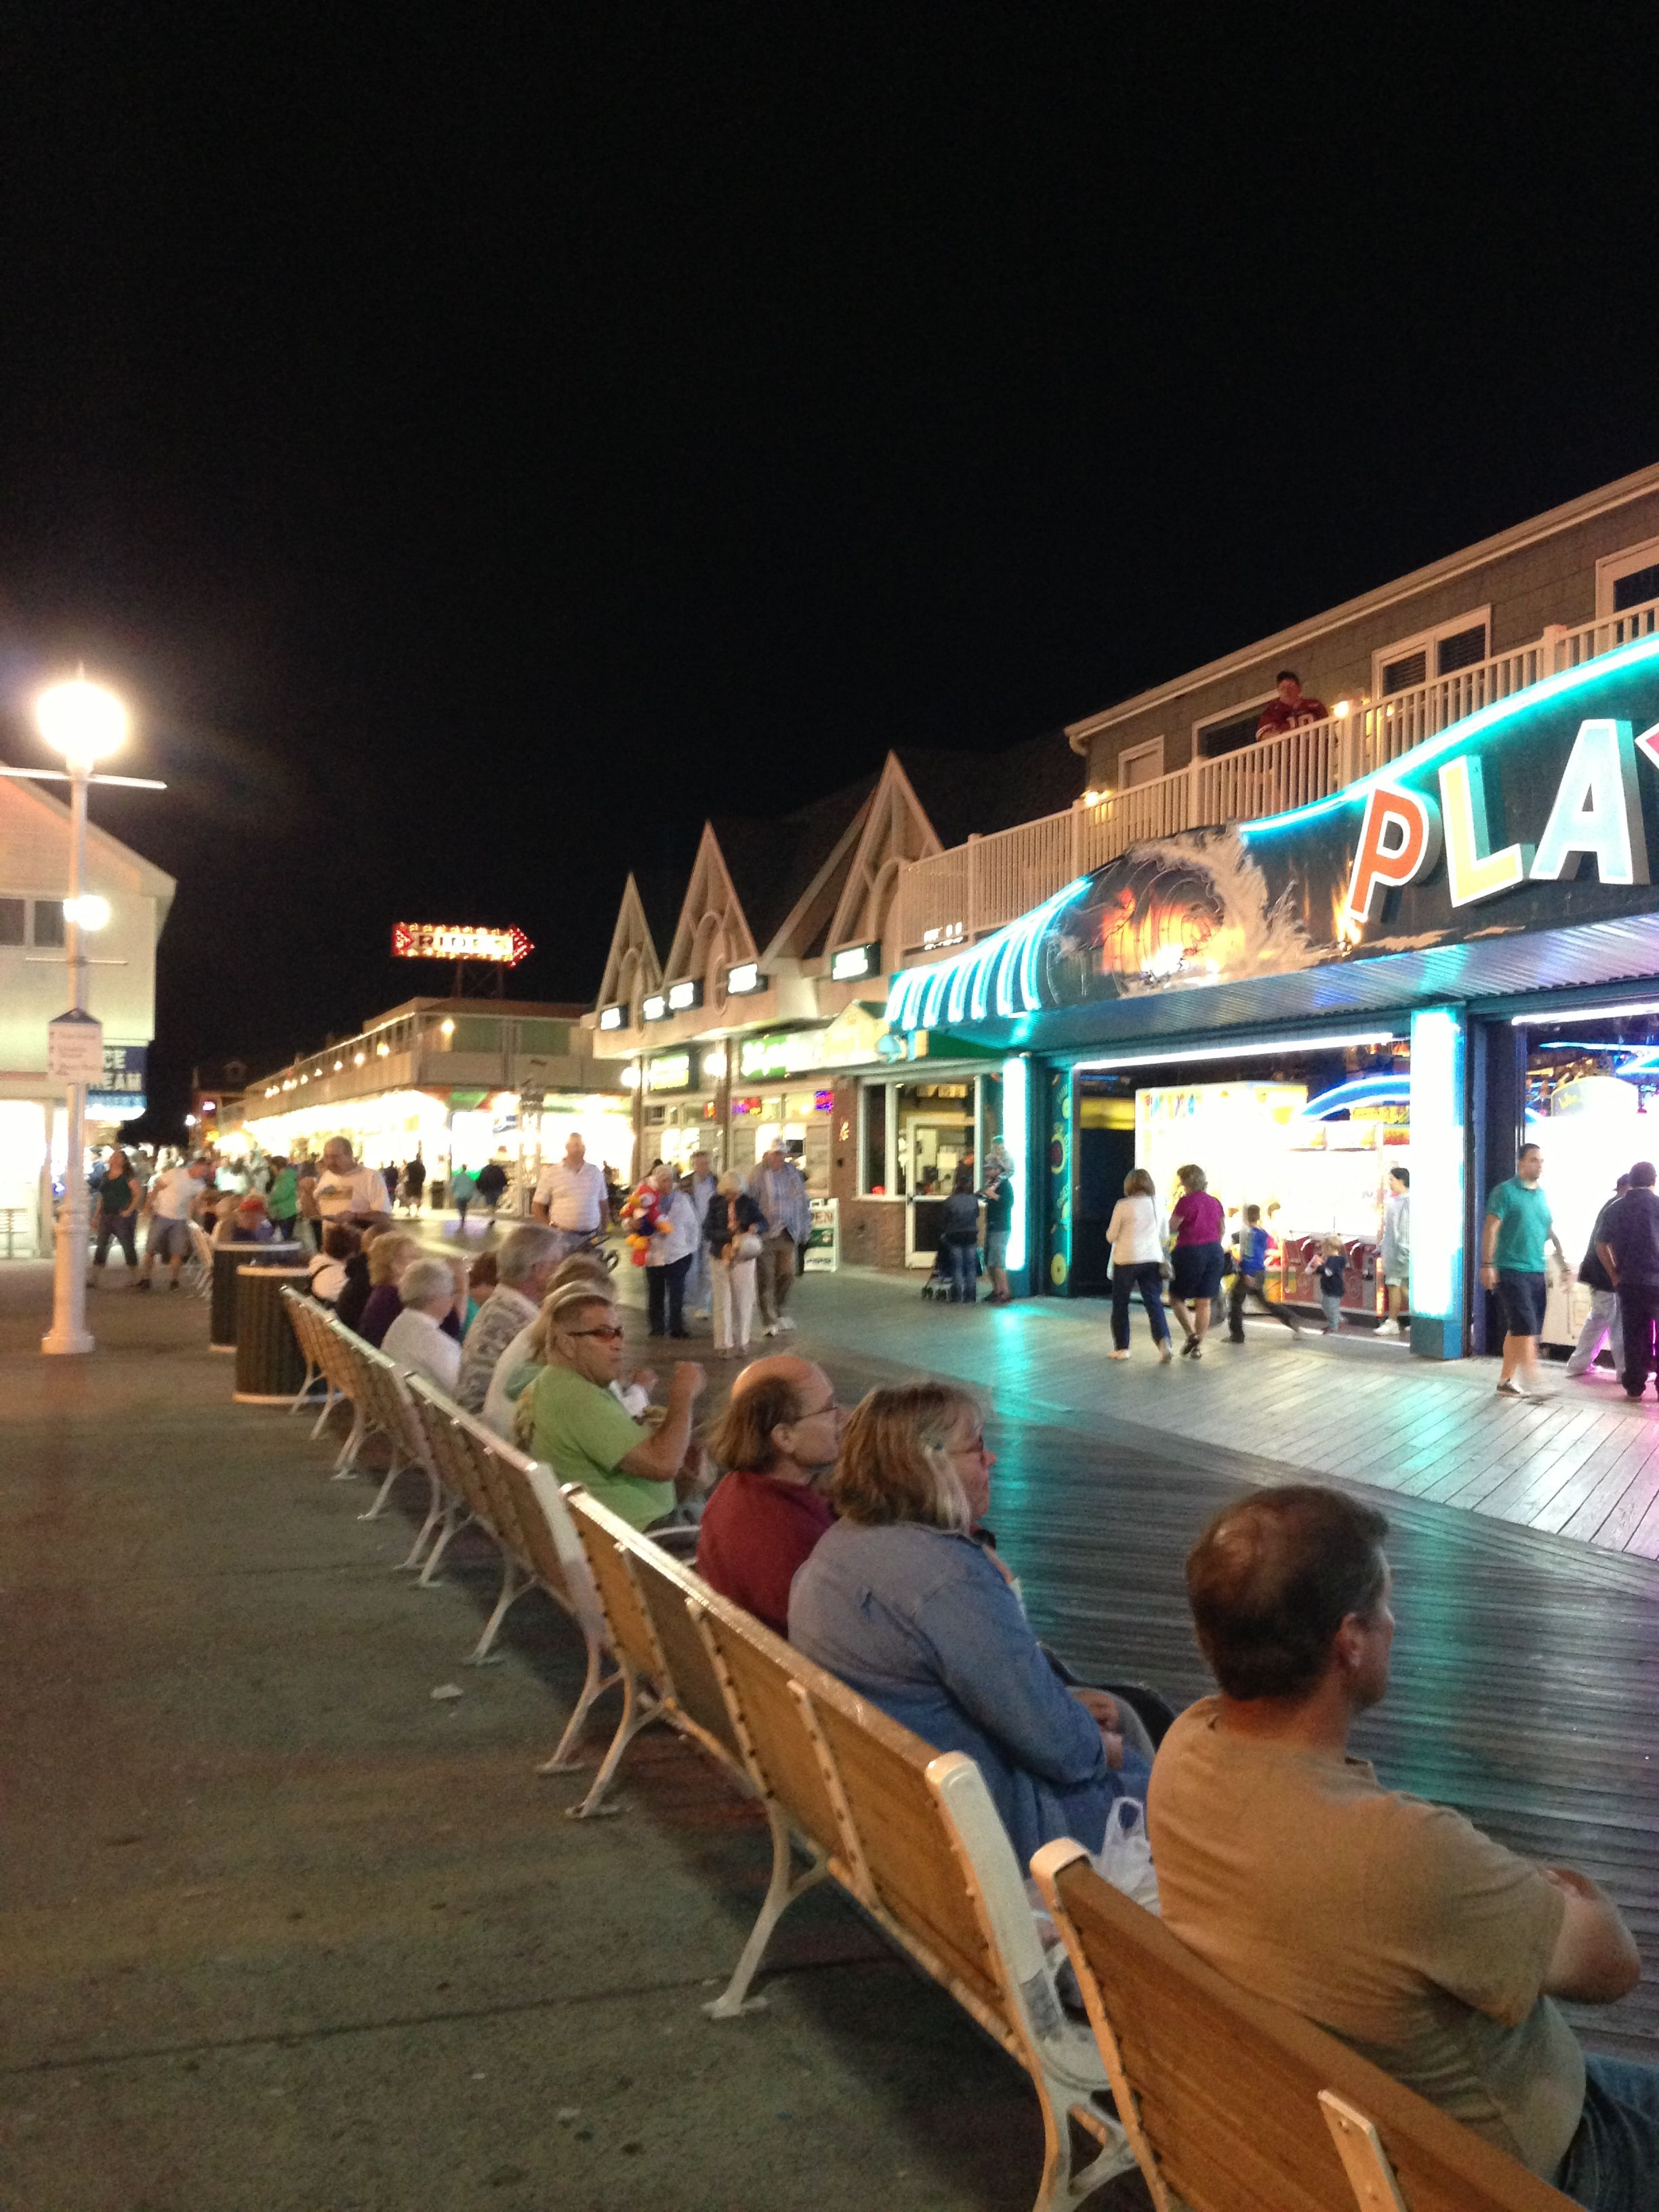 On The Boardwalk Ocean City MD. Yep, Love Sitting On The